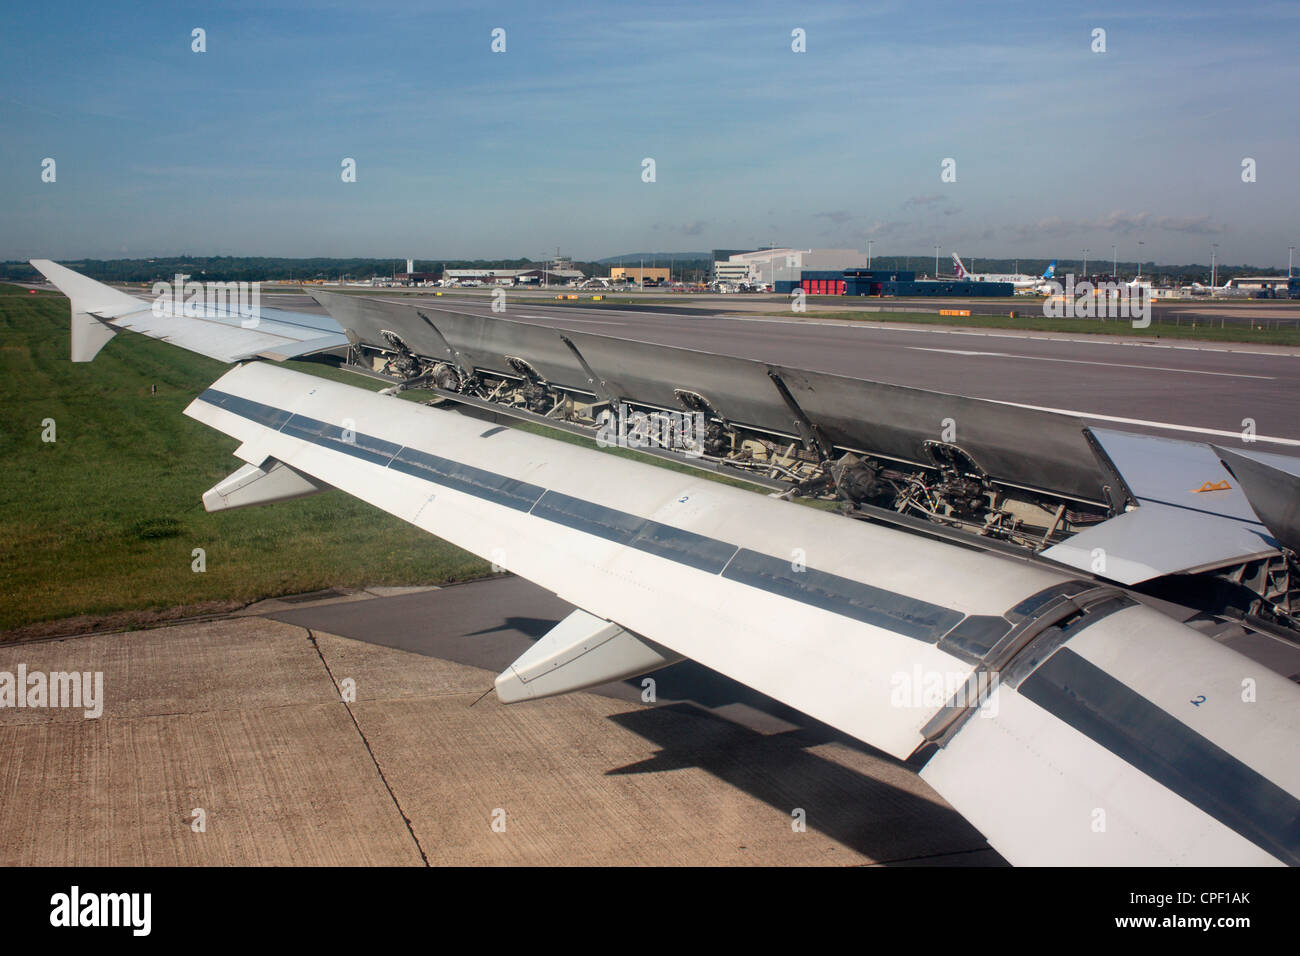 Commercial air transport. Wing of an Airbus A320 jet plane after touchdown with spoilers up and flaps down. Aerodynamics - Stock Image